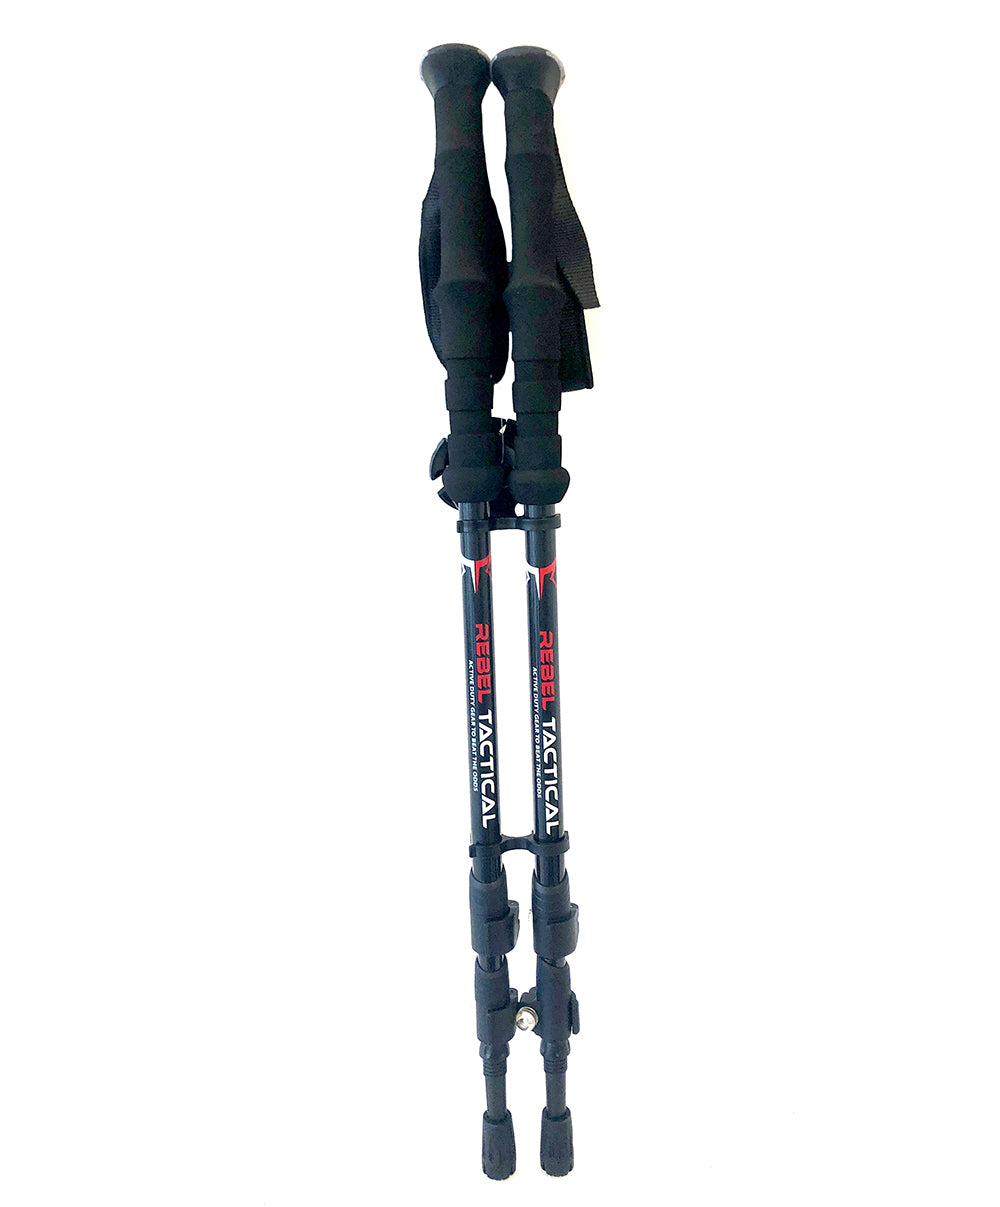 Rebel Tactical Carbon Fiber Walking Stick